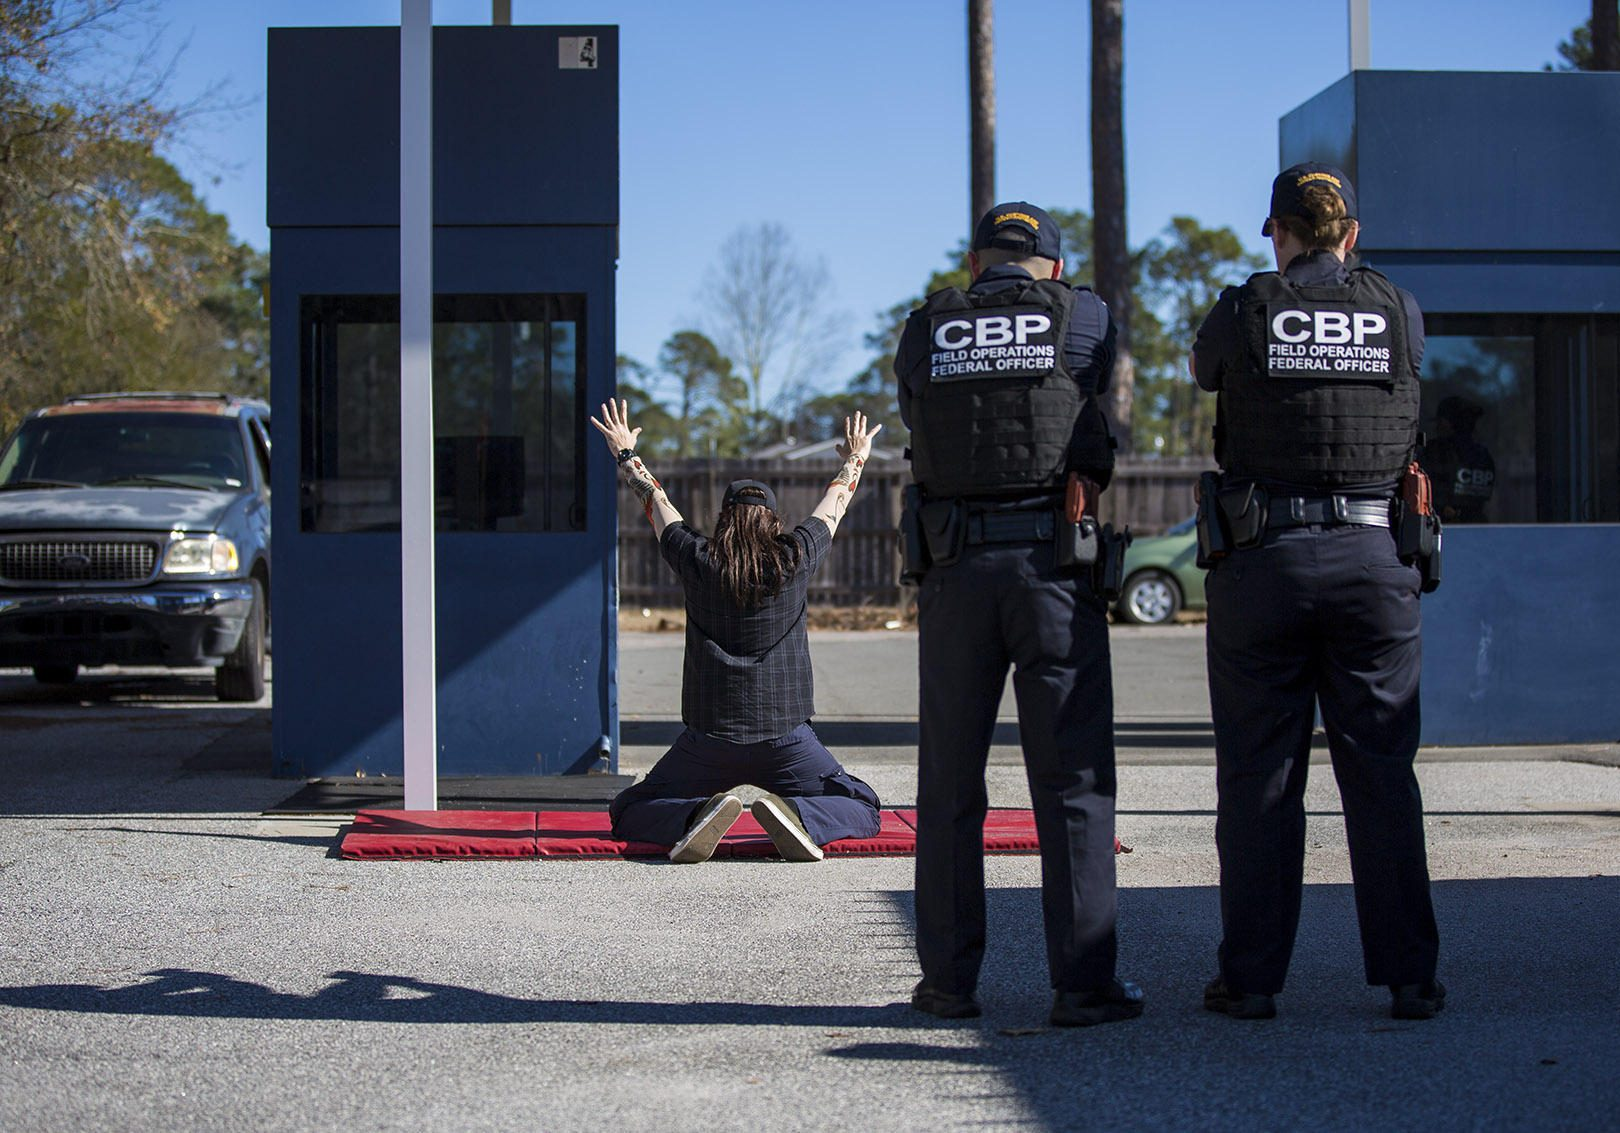 At the federal law enforcement training center in Brunswick, Georgia, U.S. Customs and Border Protection officer trainees conduct a border crossing drill. Photo by Jesse Costa for WBUR